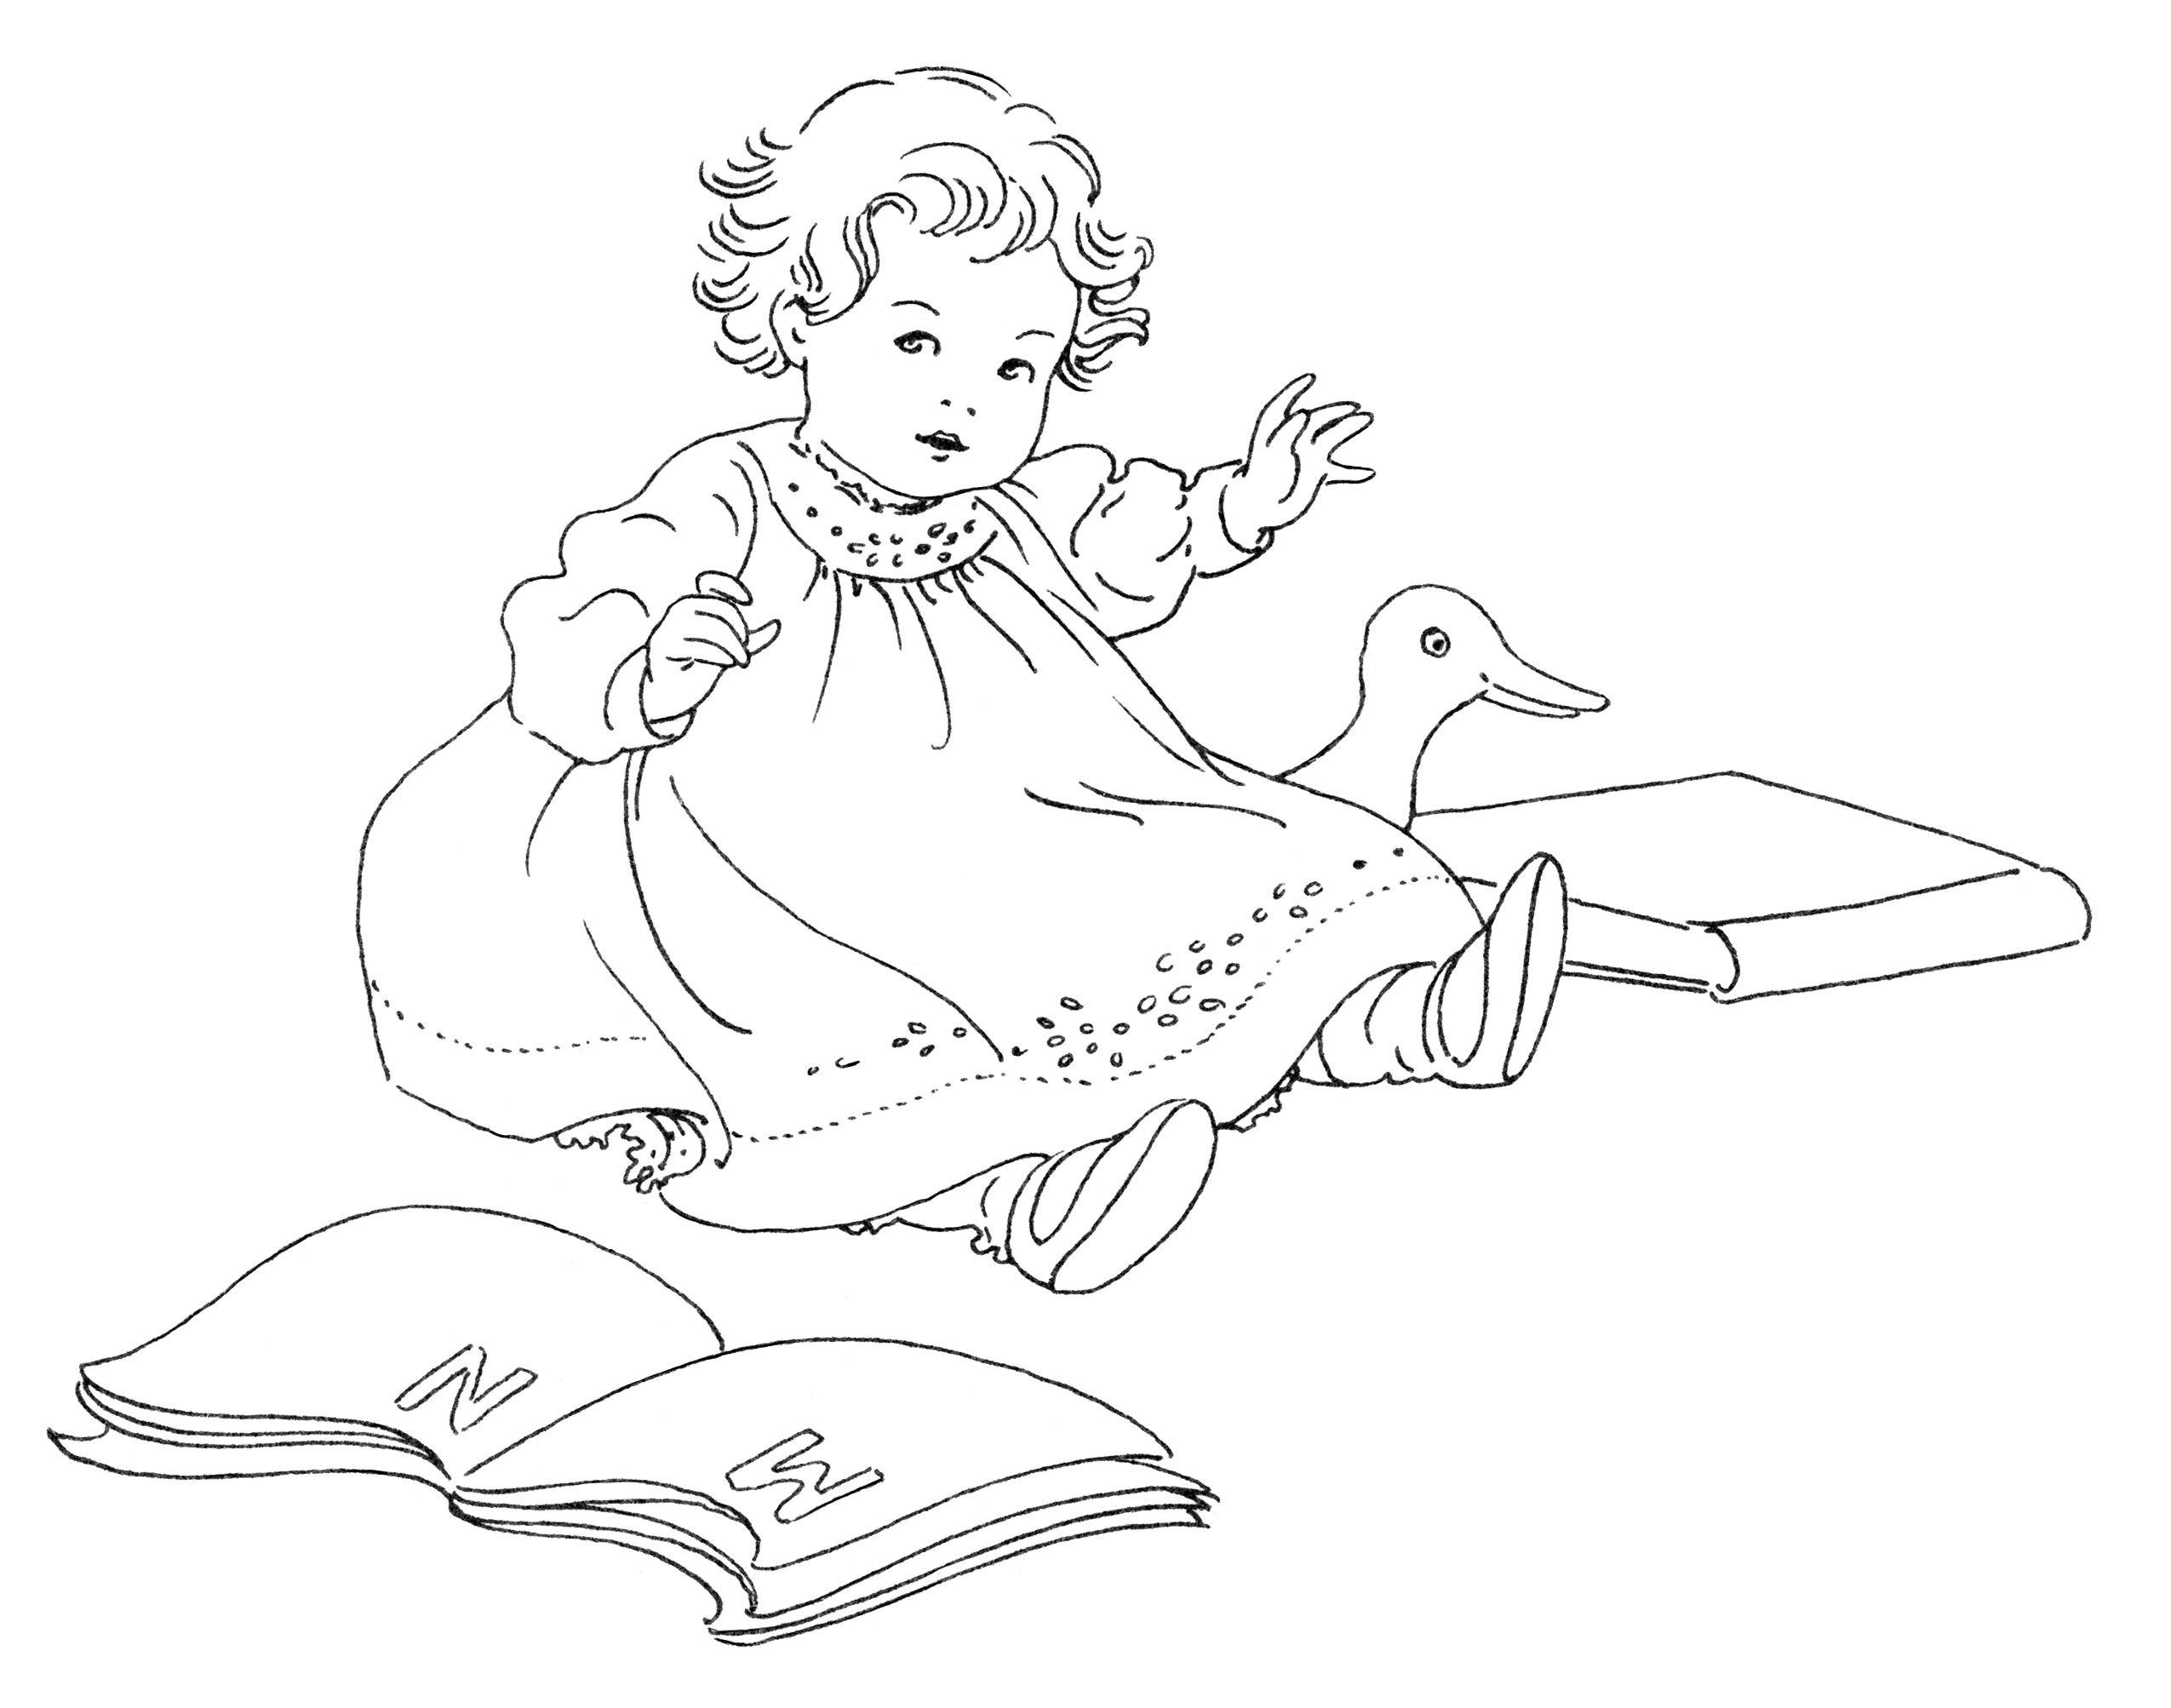 vintage baby clipart, black and white clipart, baby with toys illustration, pictures from baby book, little girl with books illustration